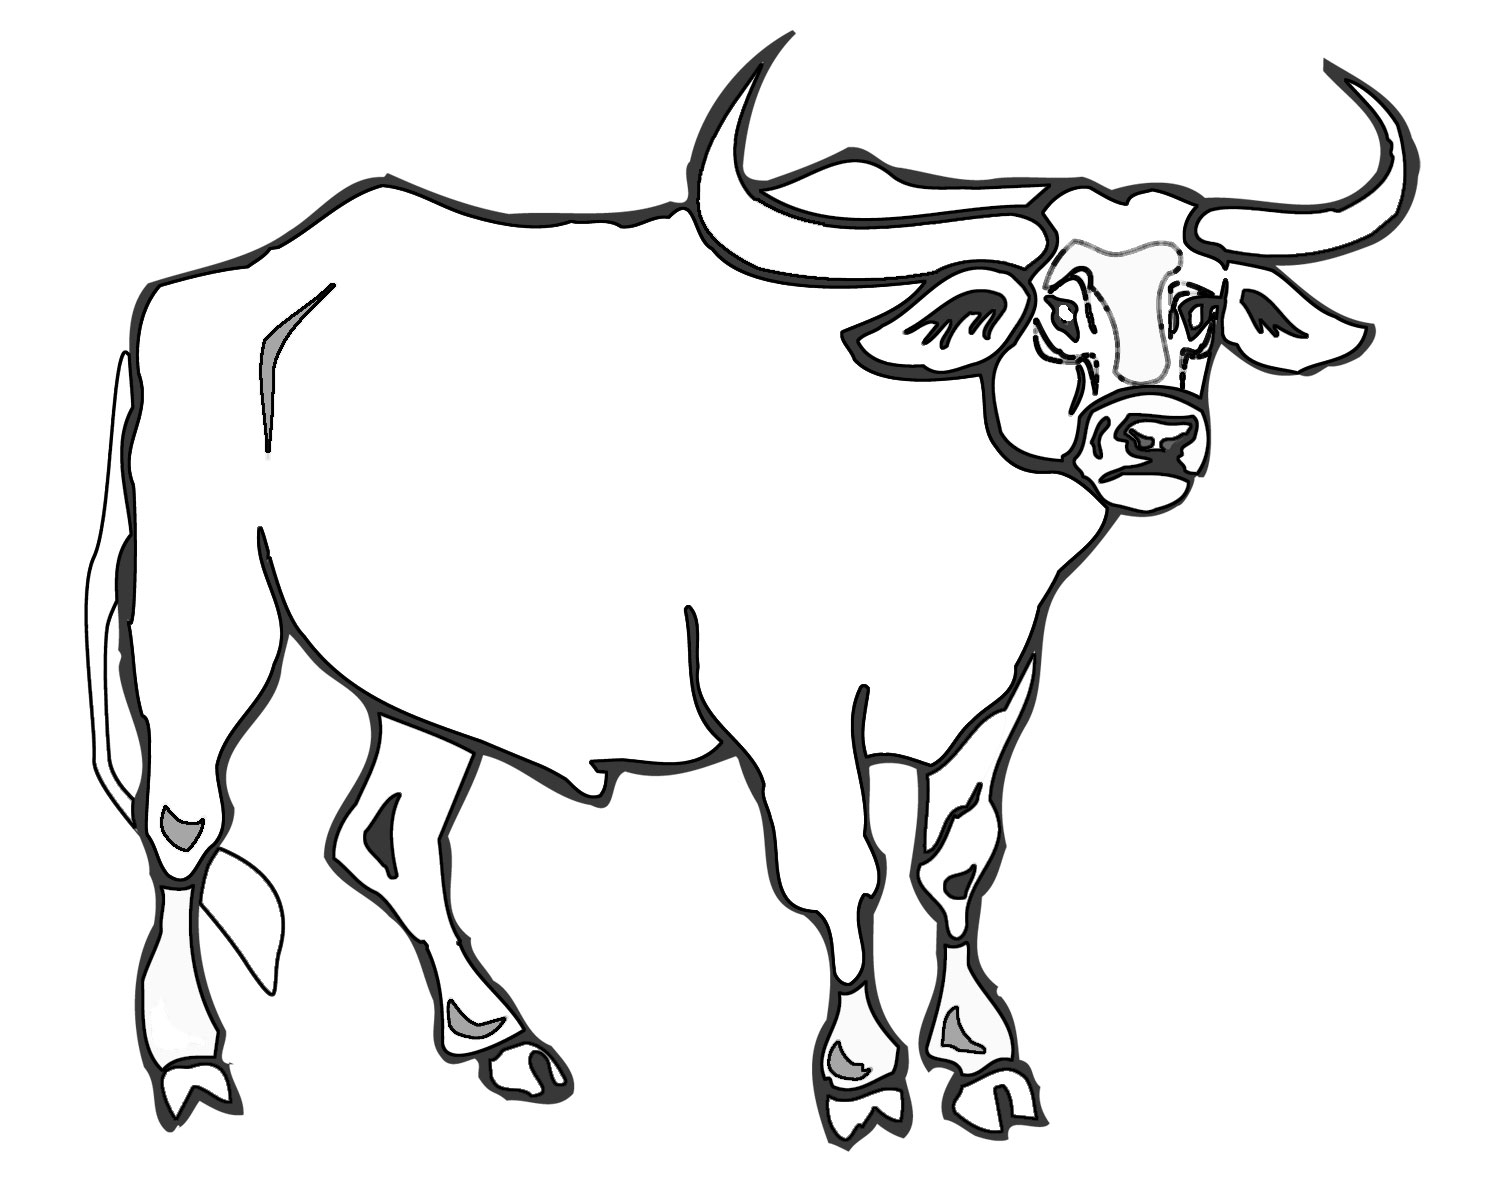 ccg colouring in bull Benny the Bull Coloring Pages  Bull Coloring Pictures